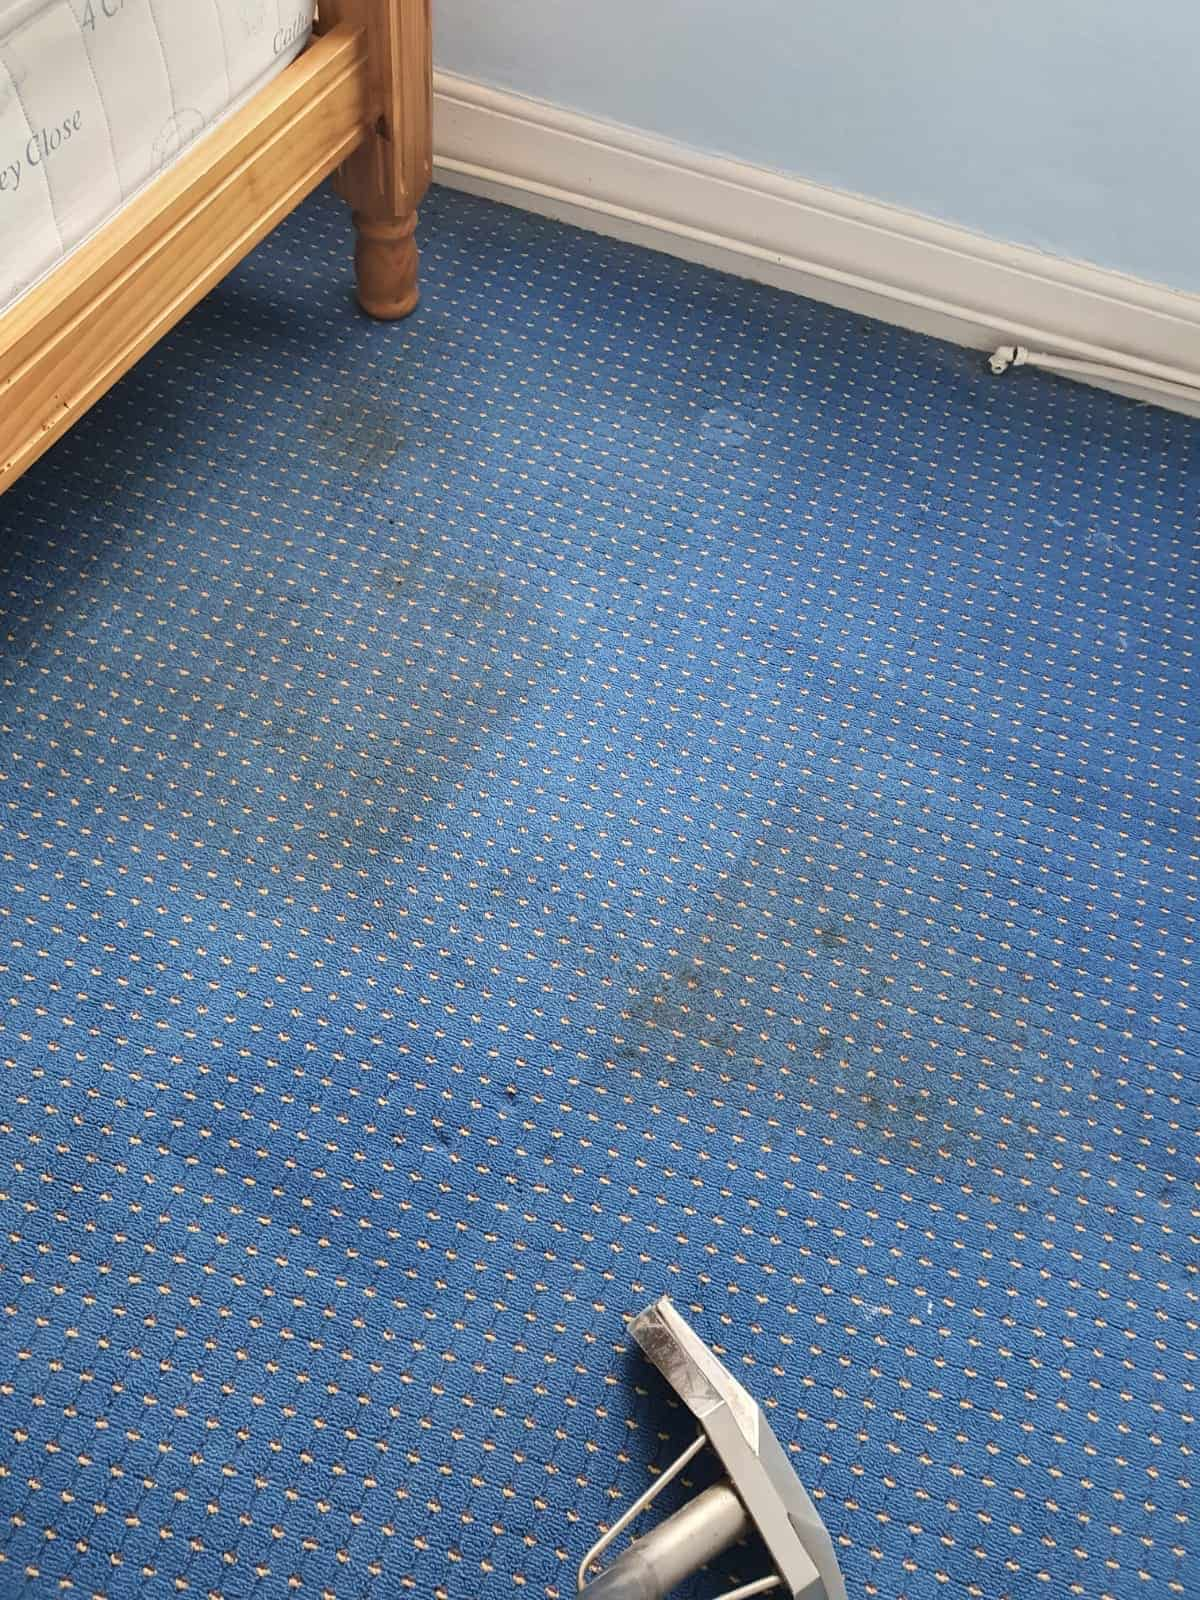 A before image of domestic carpets which have had a carpet cleaning service